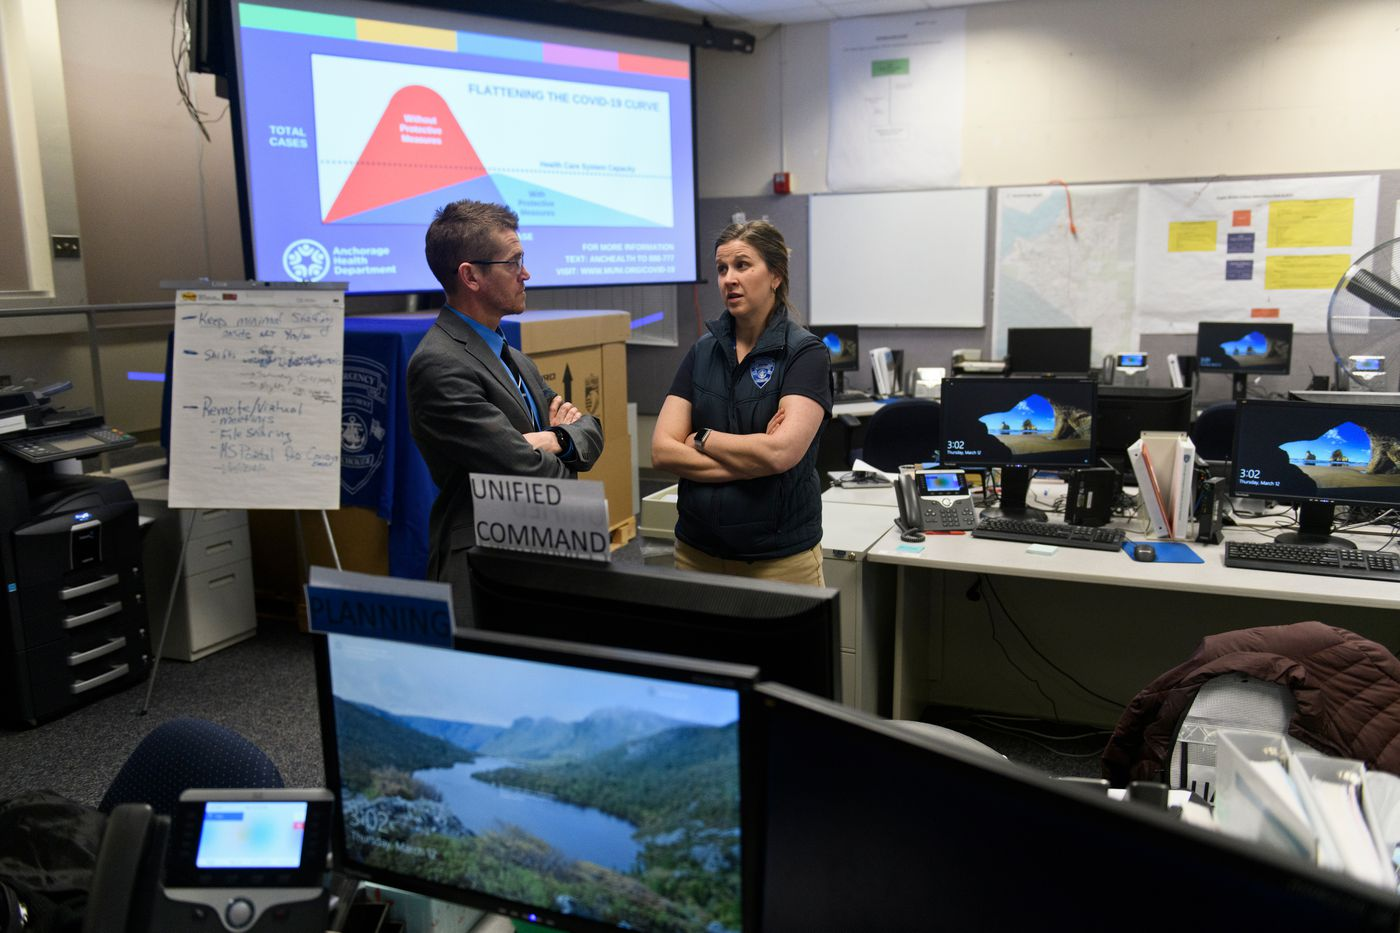 Systems analyst Mike Crawford, left, talks with Amanda Loach, director of Anchorage's Office of Emergency Management. City and school district officials held a press conference at the Anchorage Emergency Operations Center regarding measures in response to coronavirus on March 12, 2020. (Marc Lester / ADN)